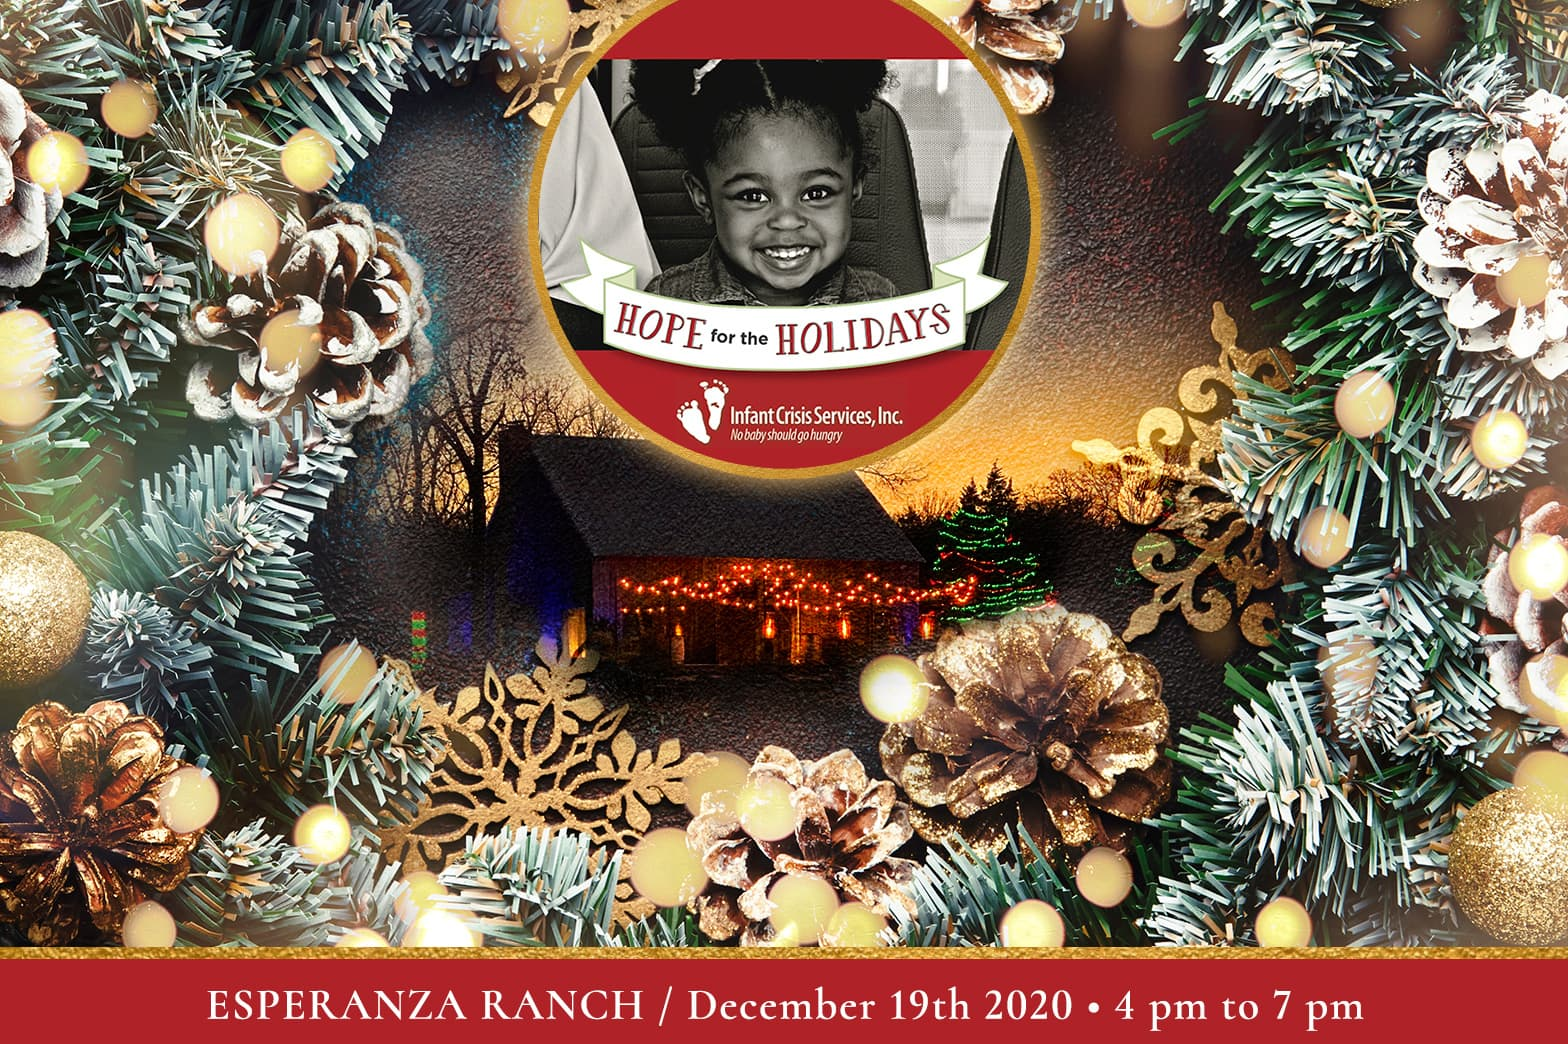 Hope for the Holidays 2020 at Esperanza Ranch OK